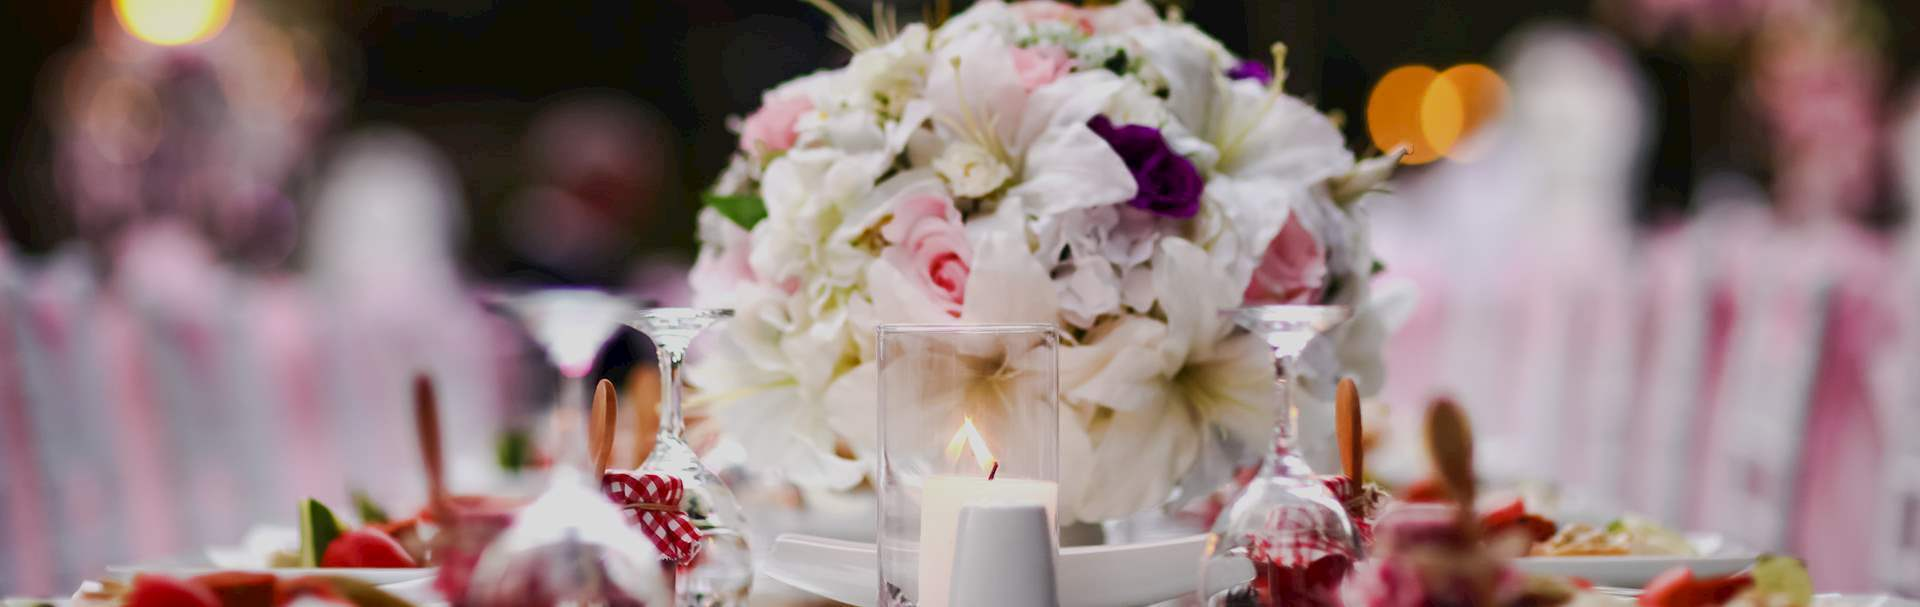 Wedding Packages at Hilton Wilmington/Christiana Newark, Delaware